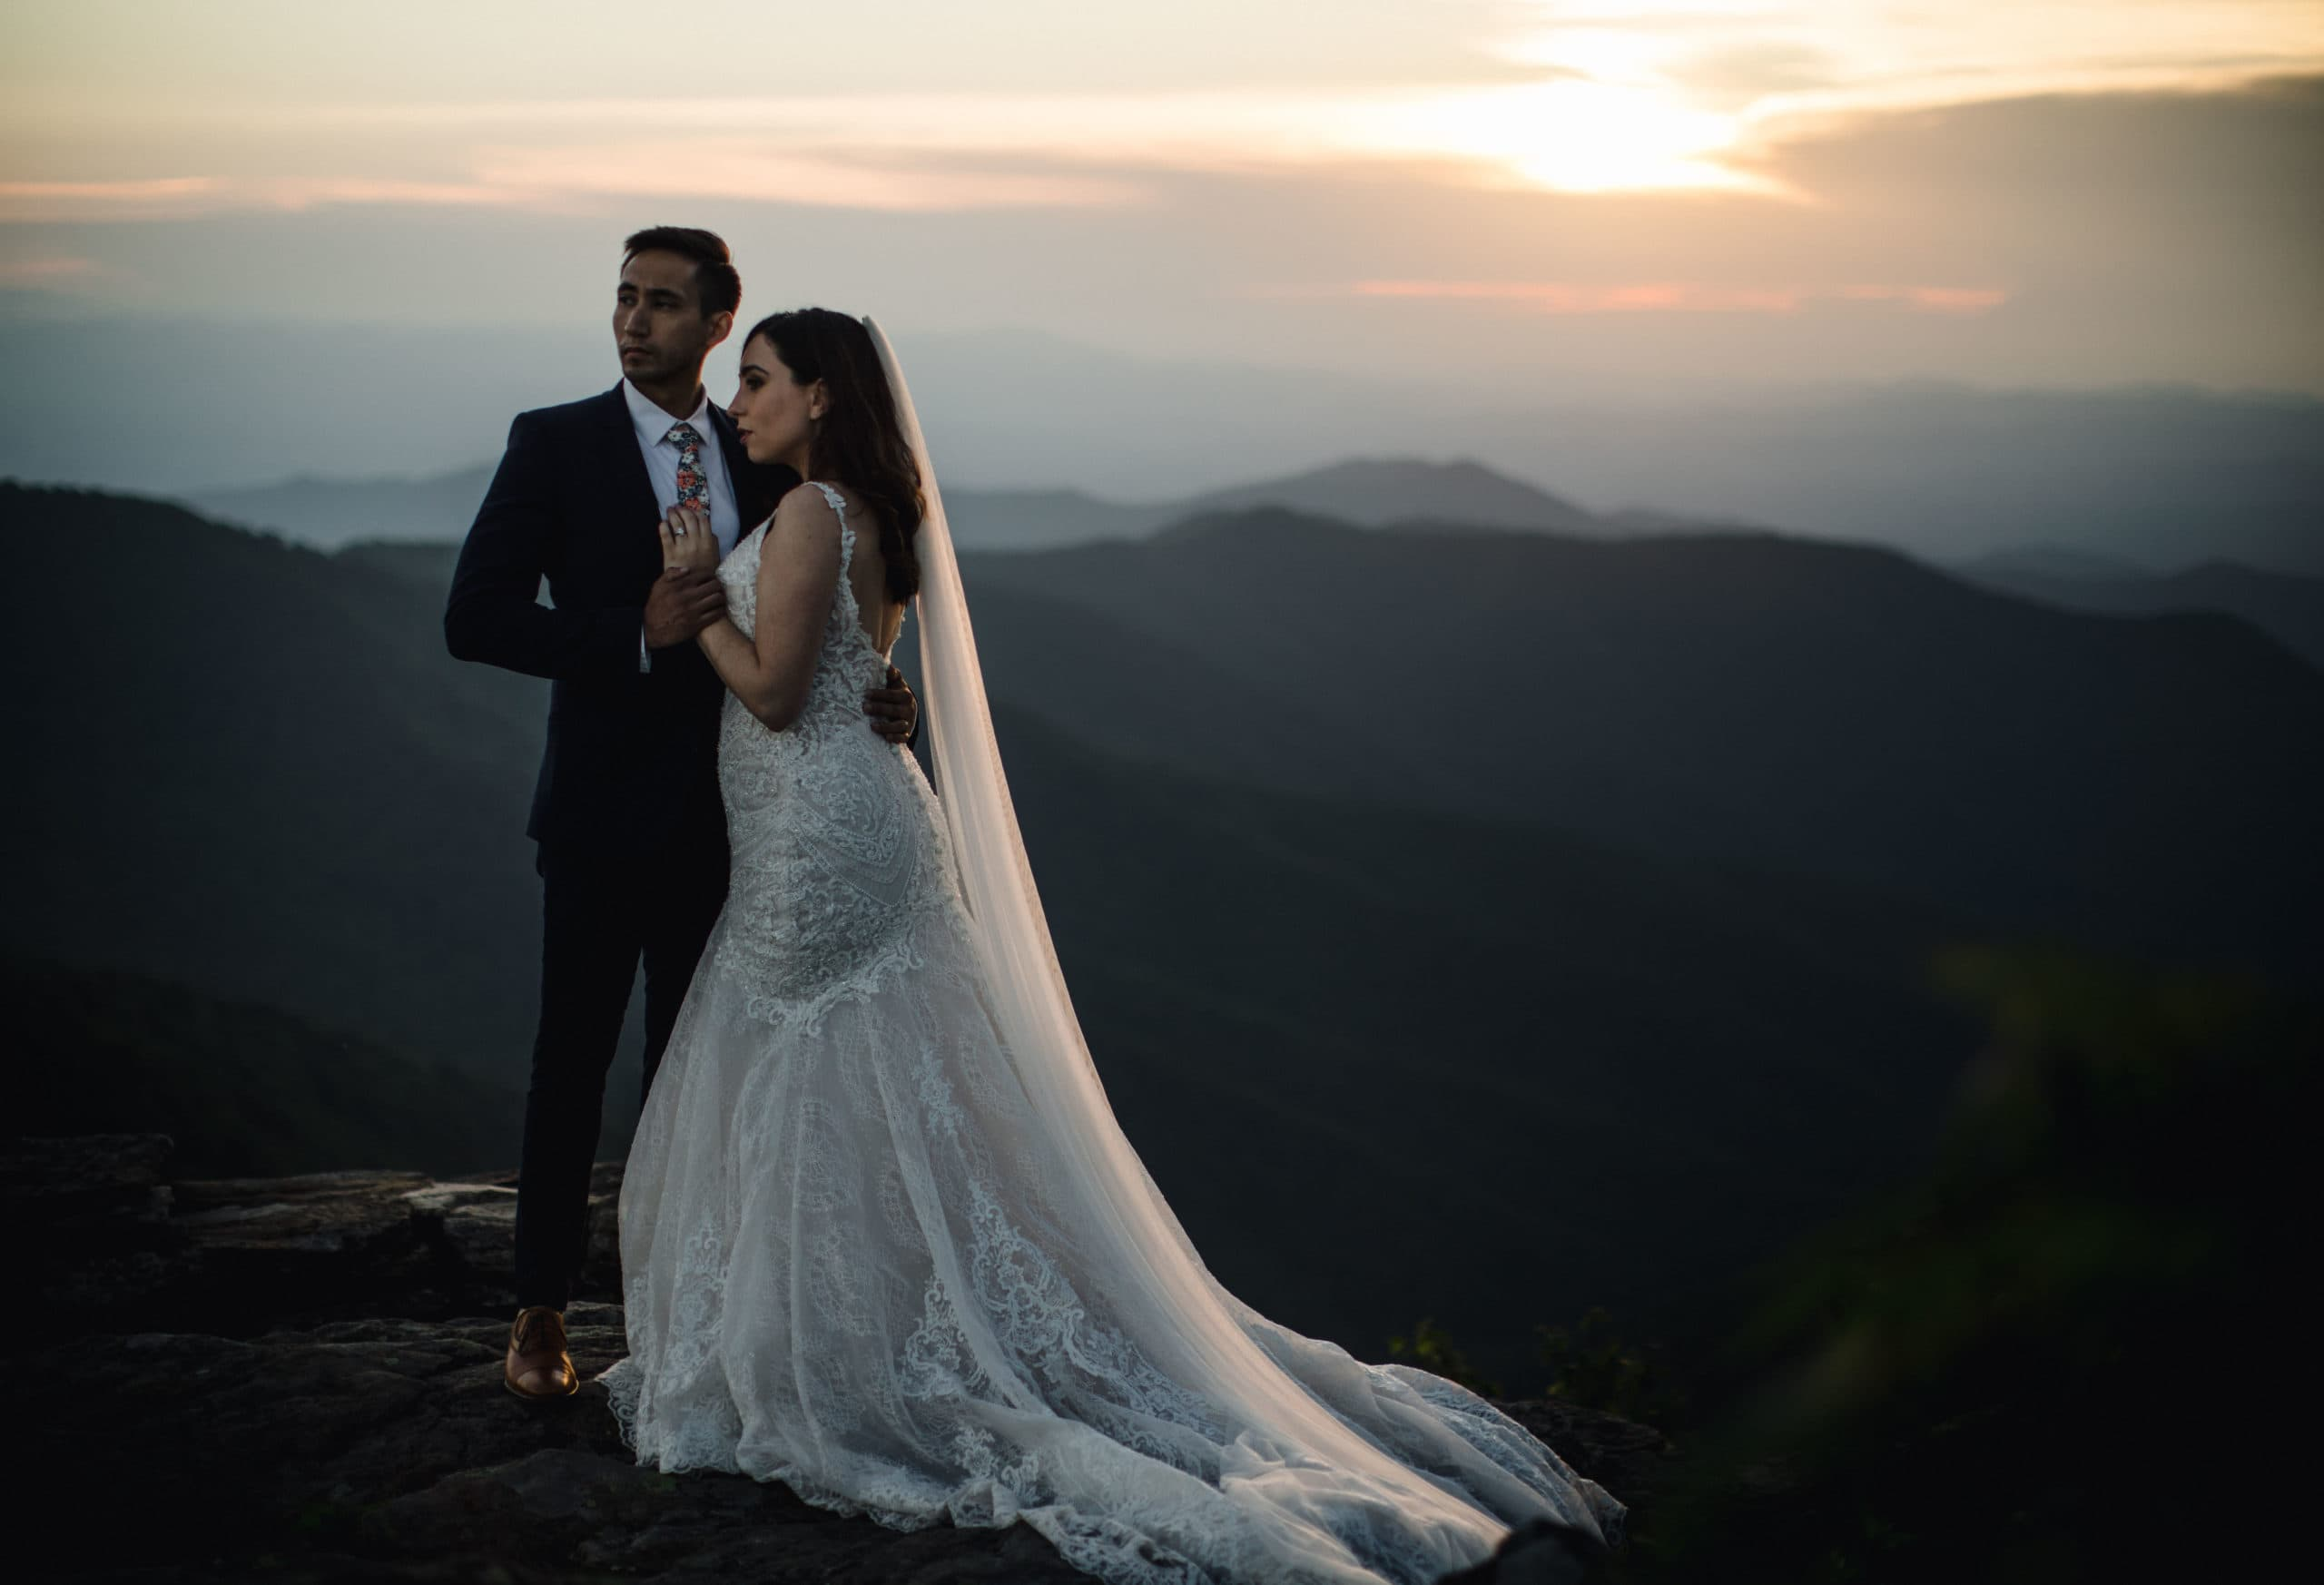 The best way to have a simple and elegant wedding is to elope.